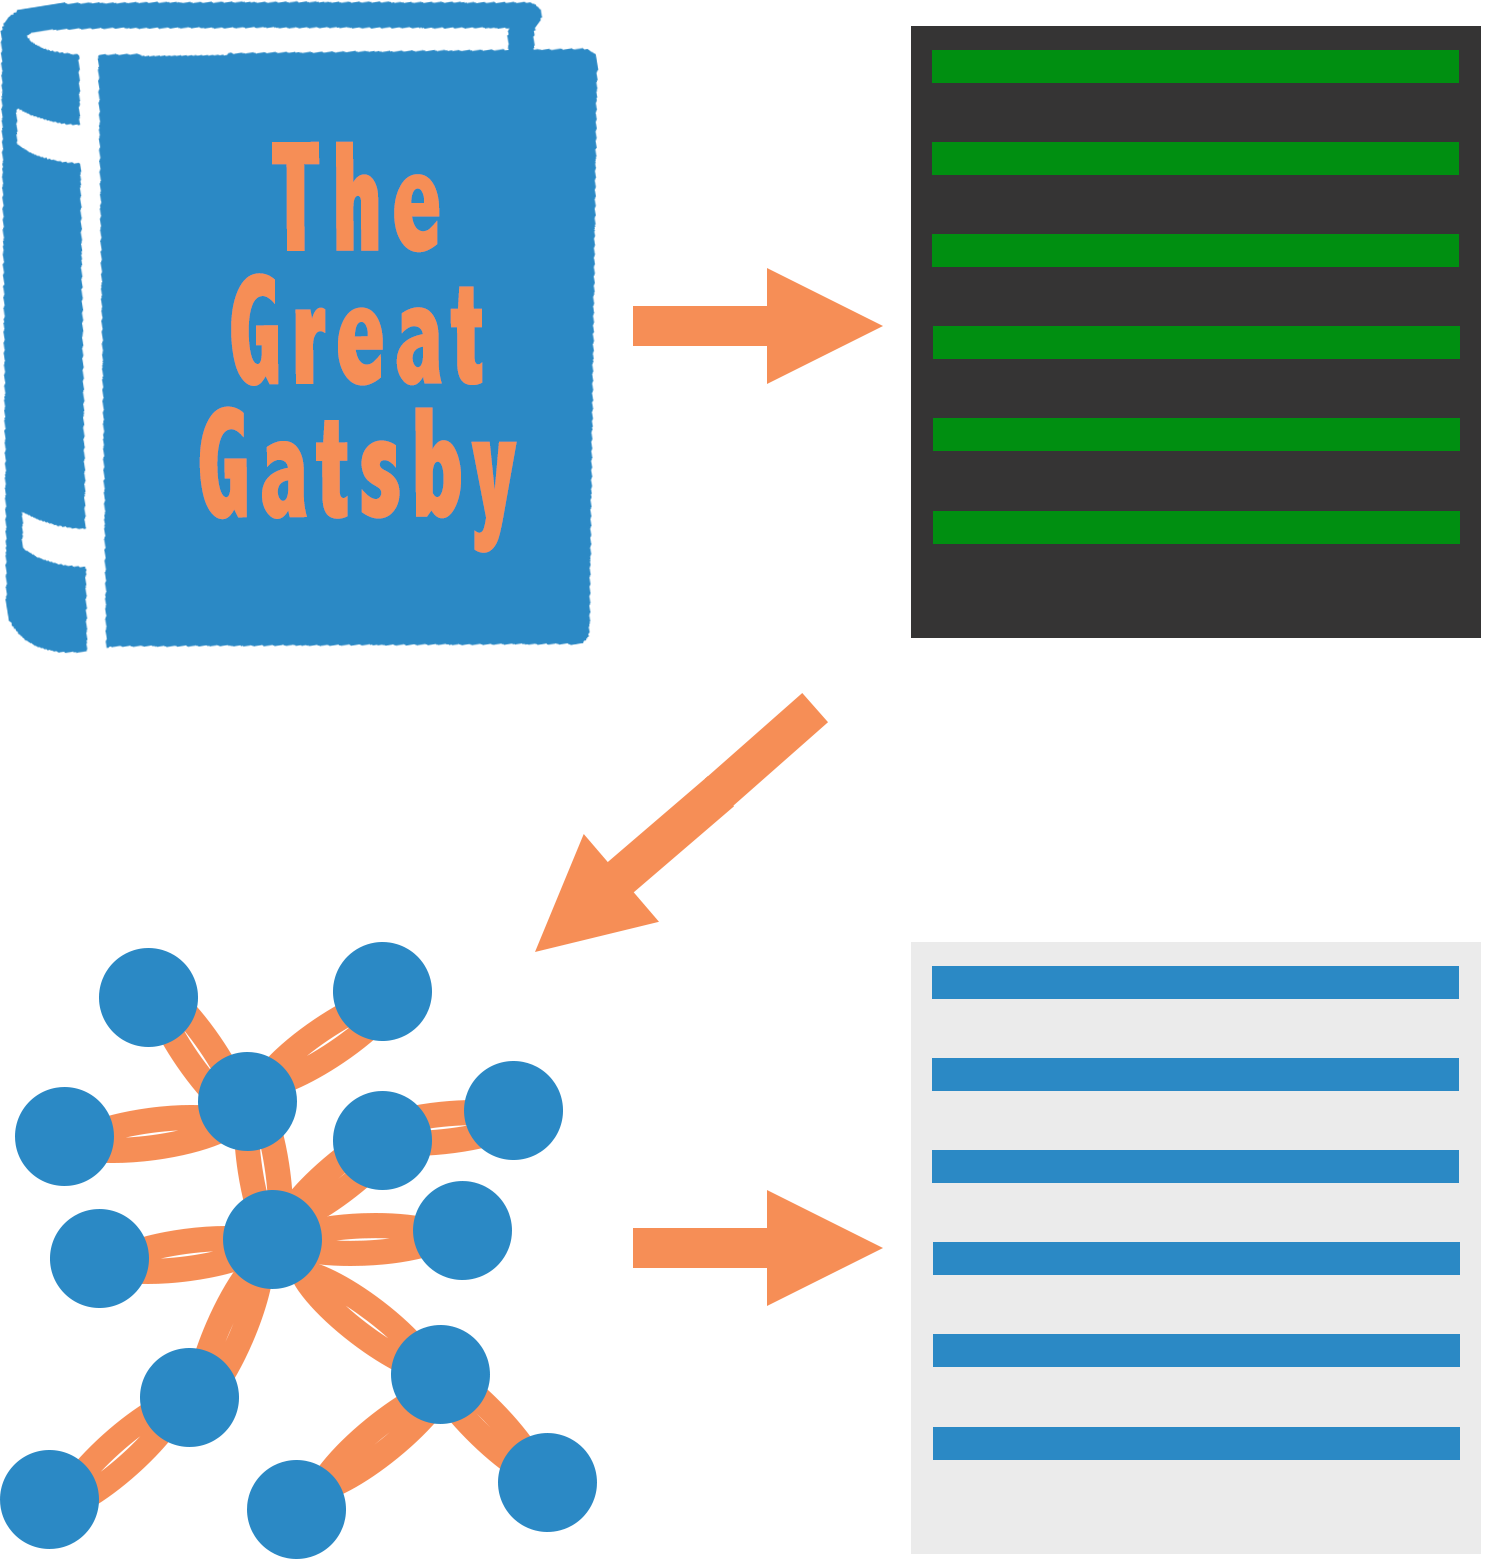 Summarizing The Great Gatsby using Natural Language Processing